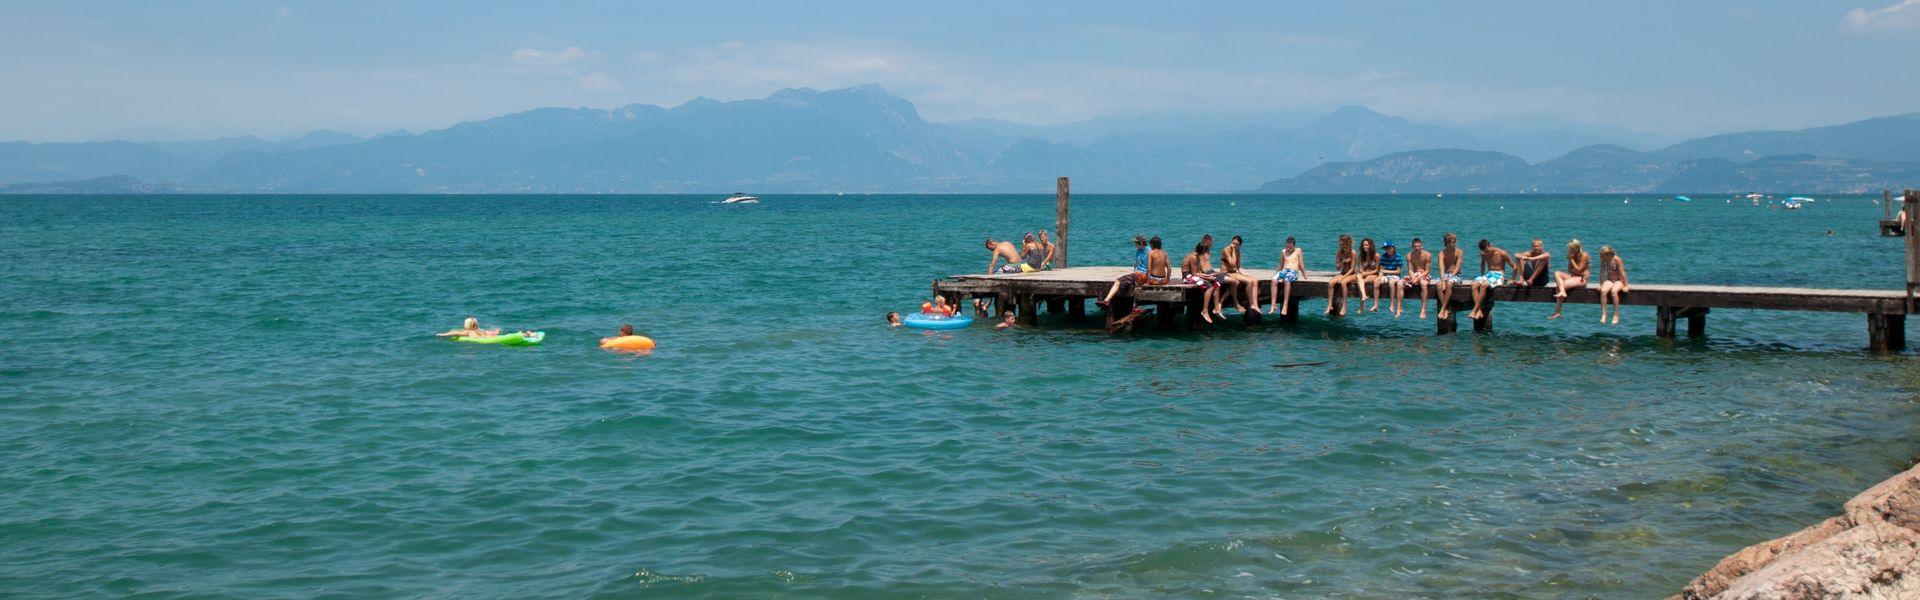 Beste Campings am Gardasee